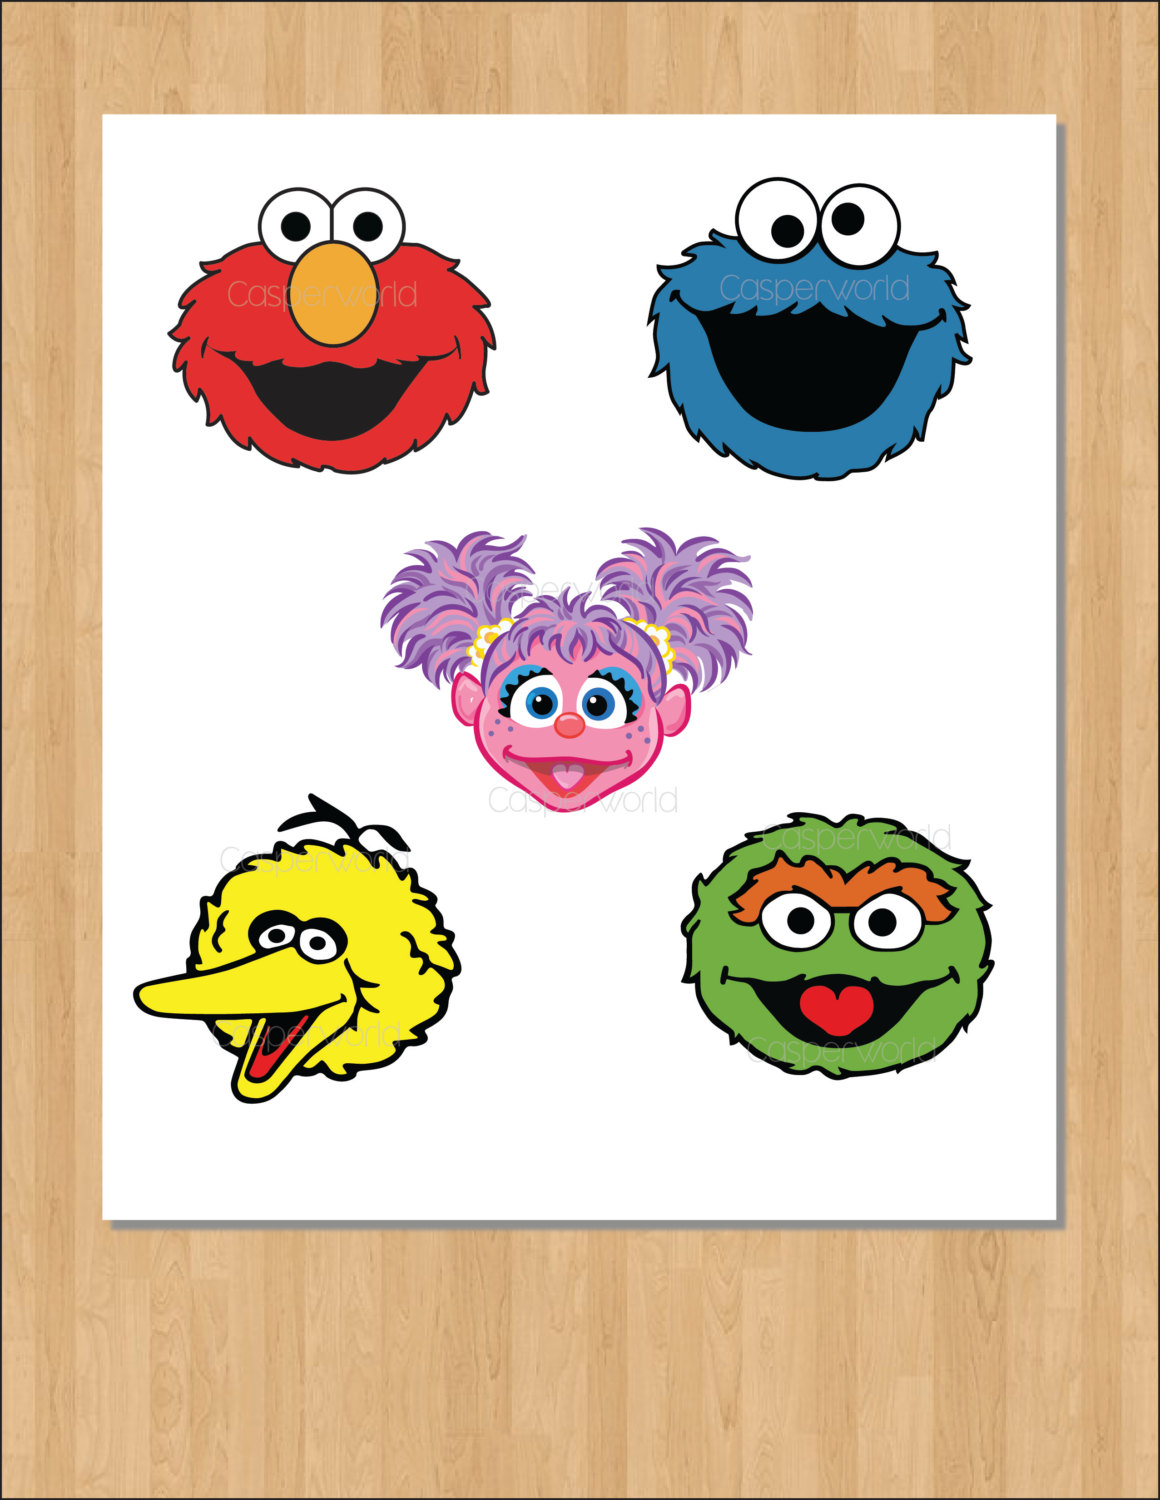 Sesam Street clipart photo booth prop Street characters Sesame elmo birthday